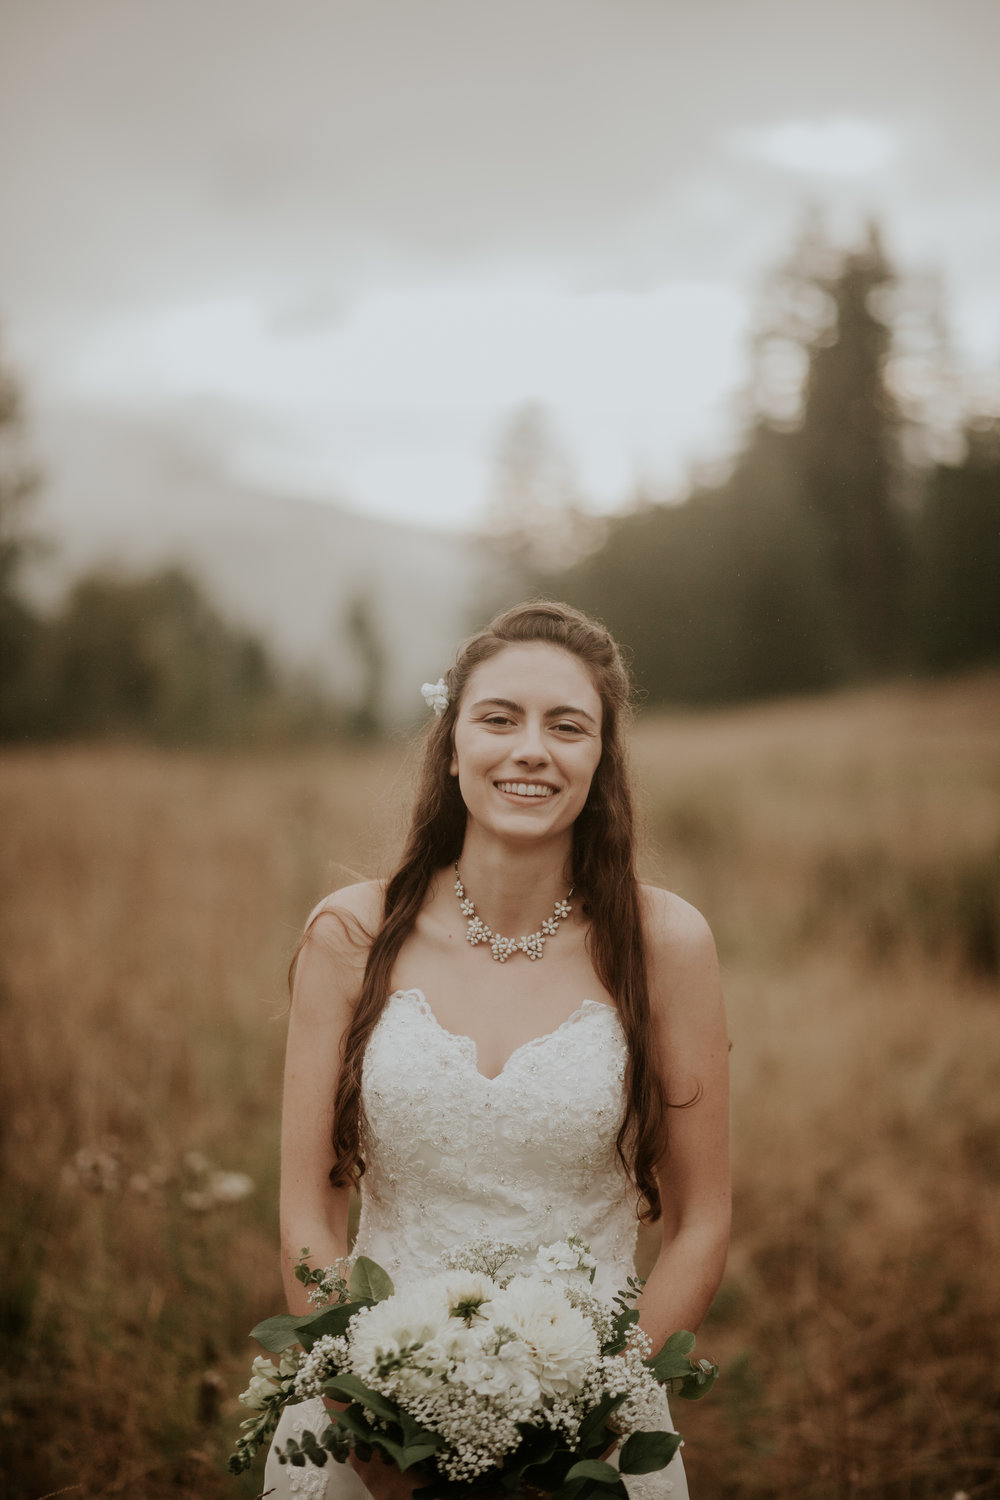 Port-Angeles-elopement-wedding-pnw-olympic-peninsula-photographer-portrait-kayladawnphoto-kayla-dawn-photography-olympic-national-park-94.jpg